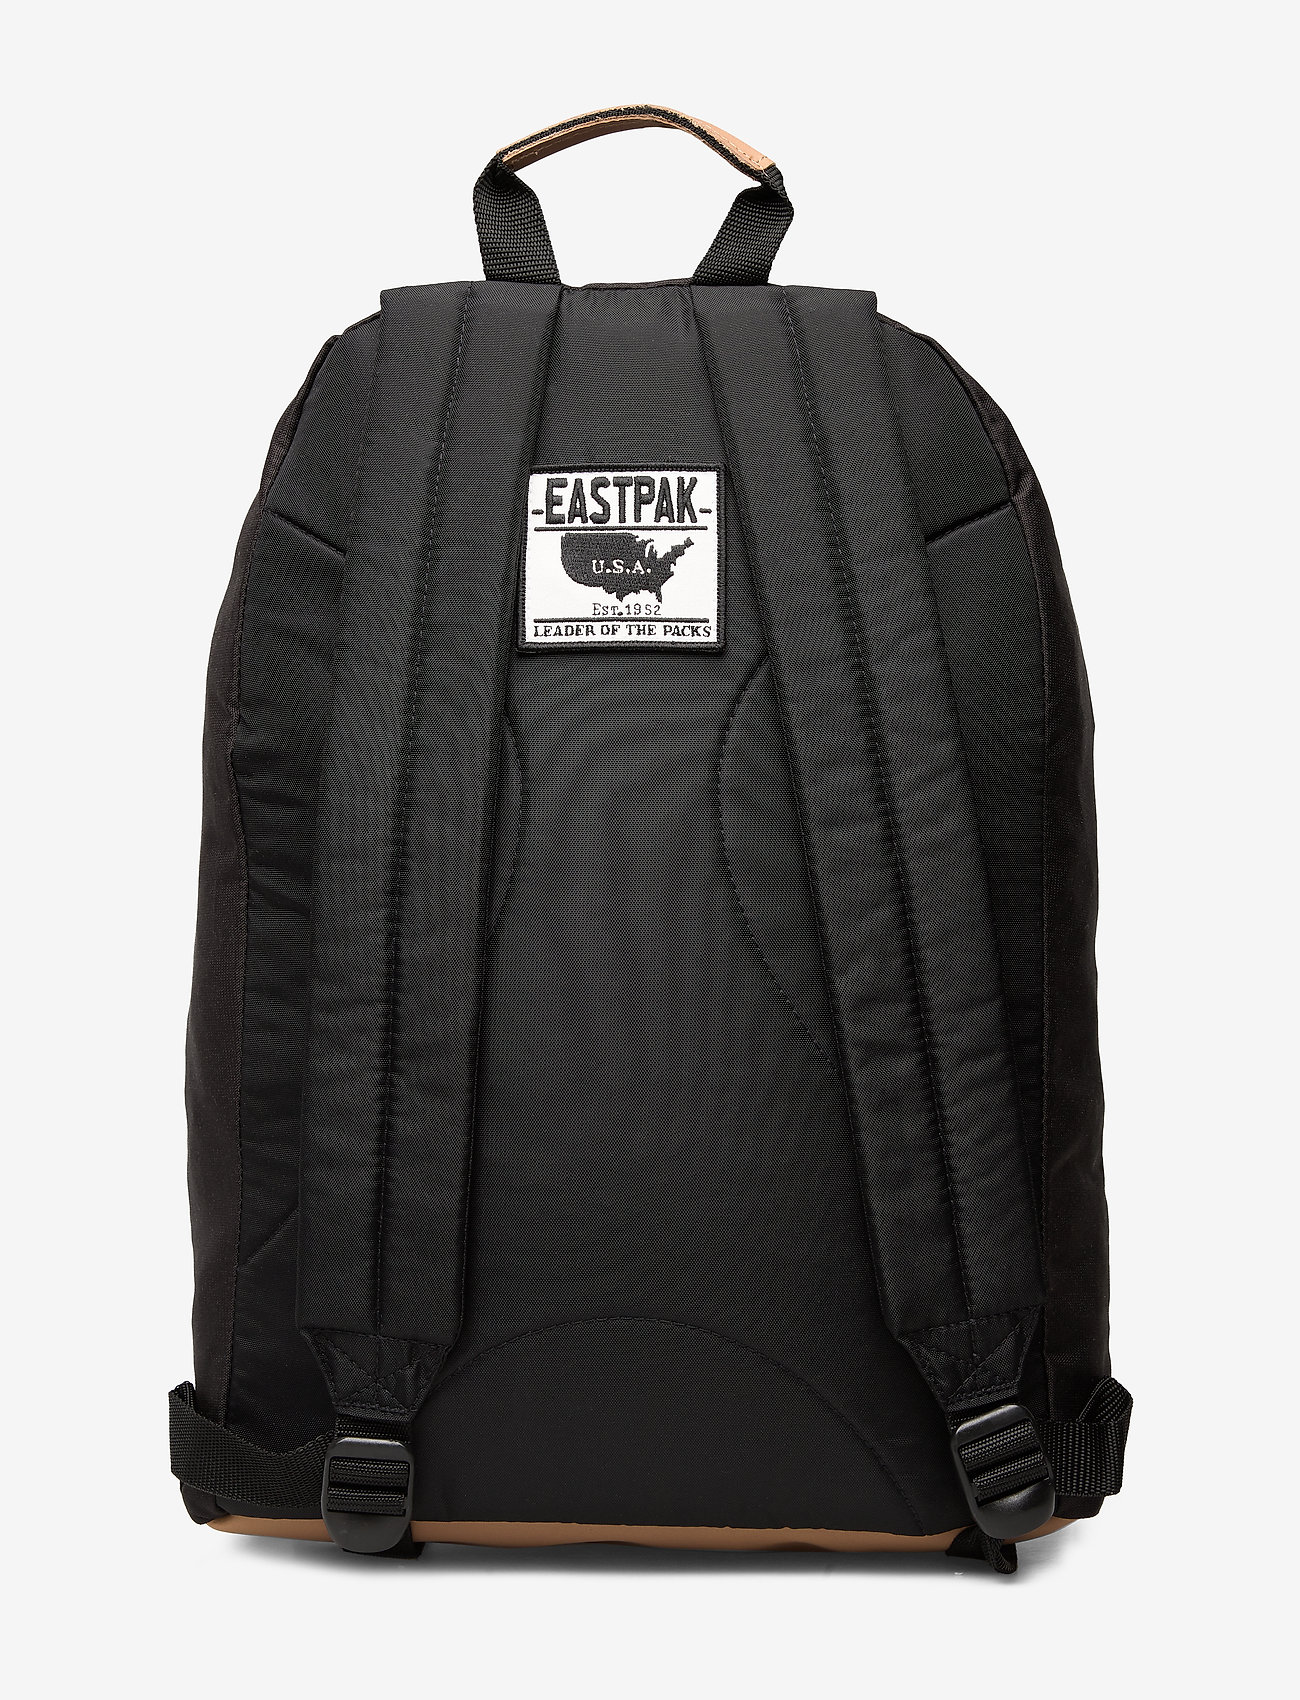 Eastpak - OUT OF OFFICE - ryggsäckar - into black - 1